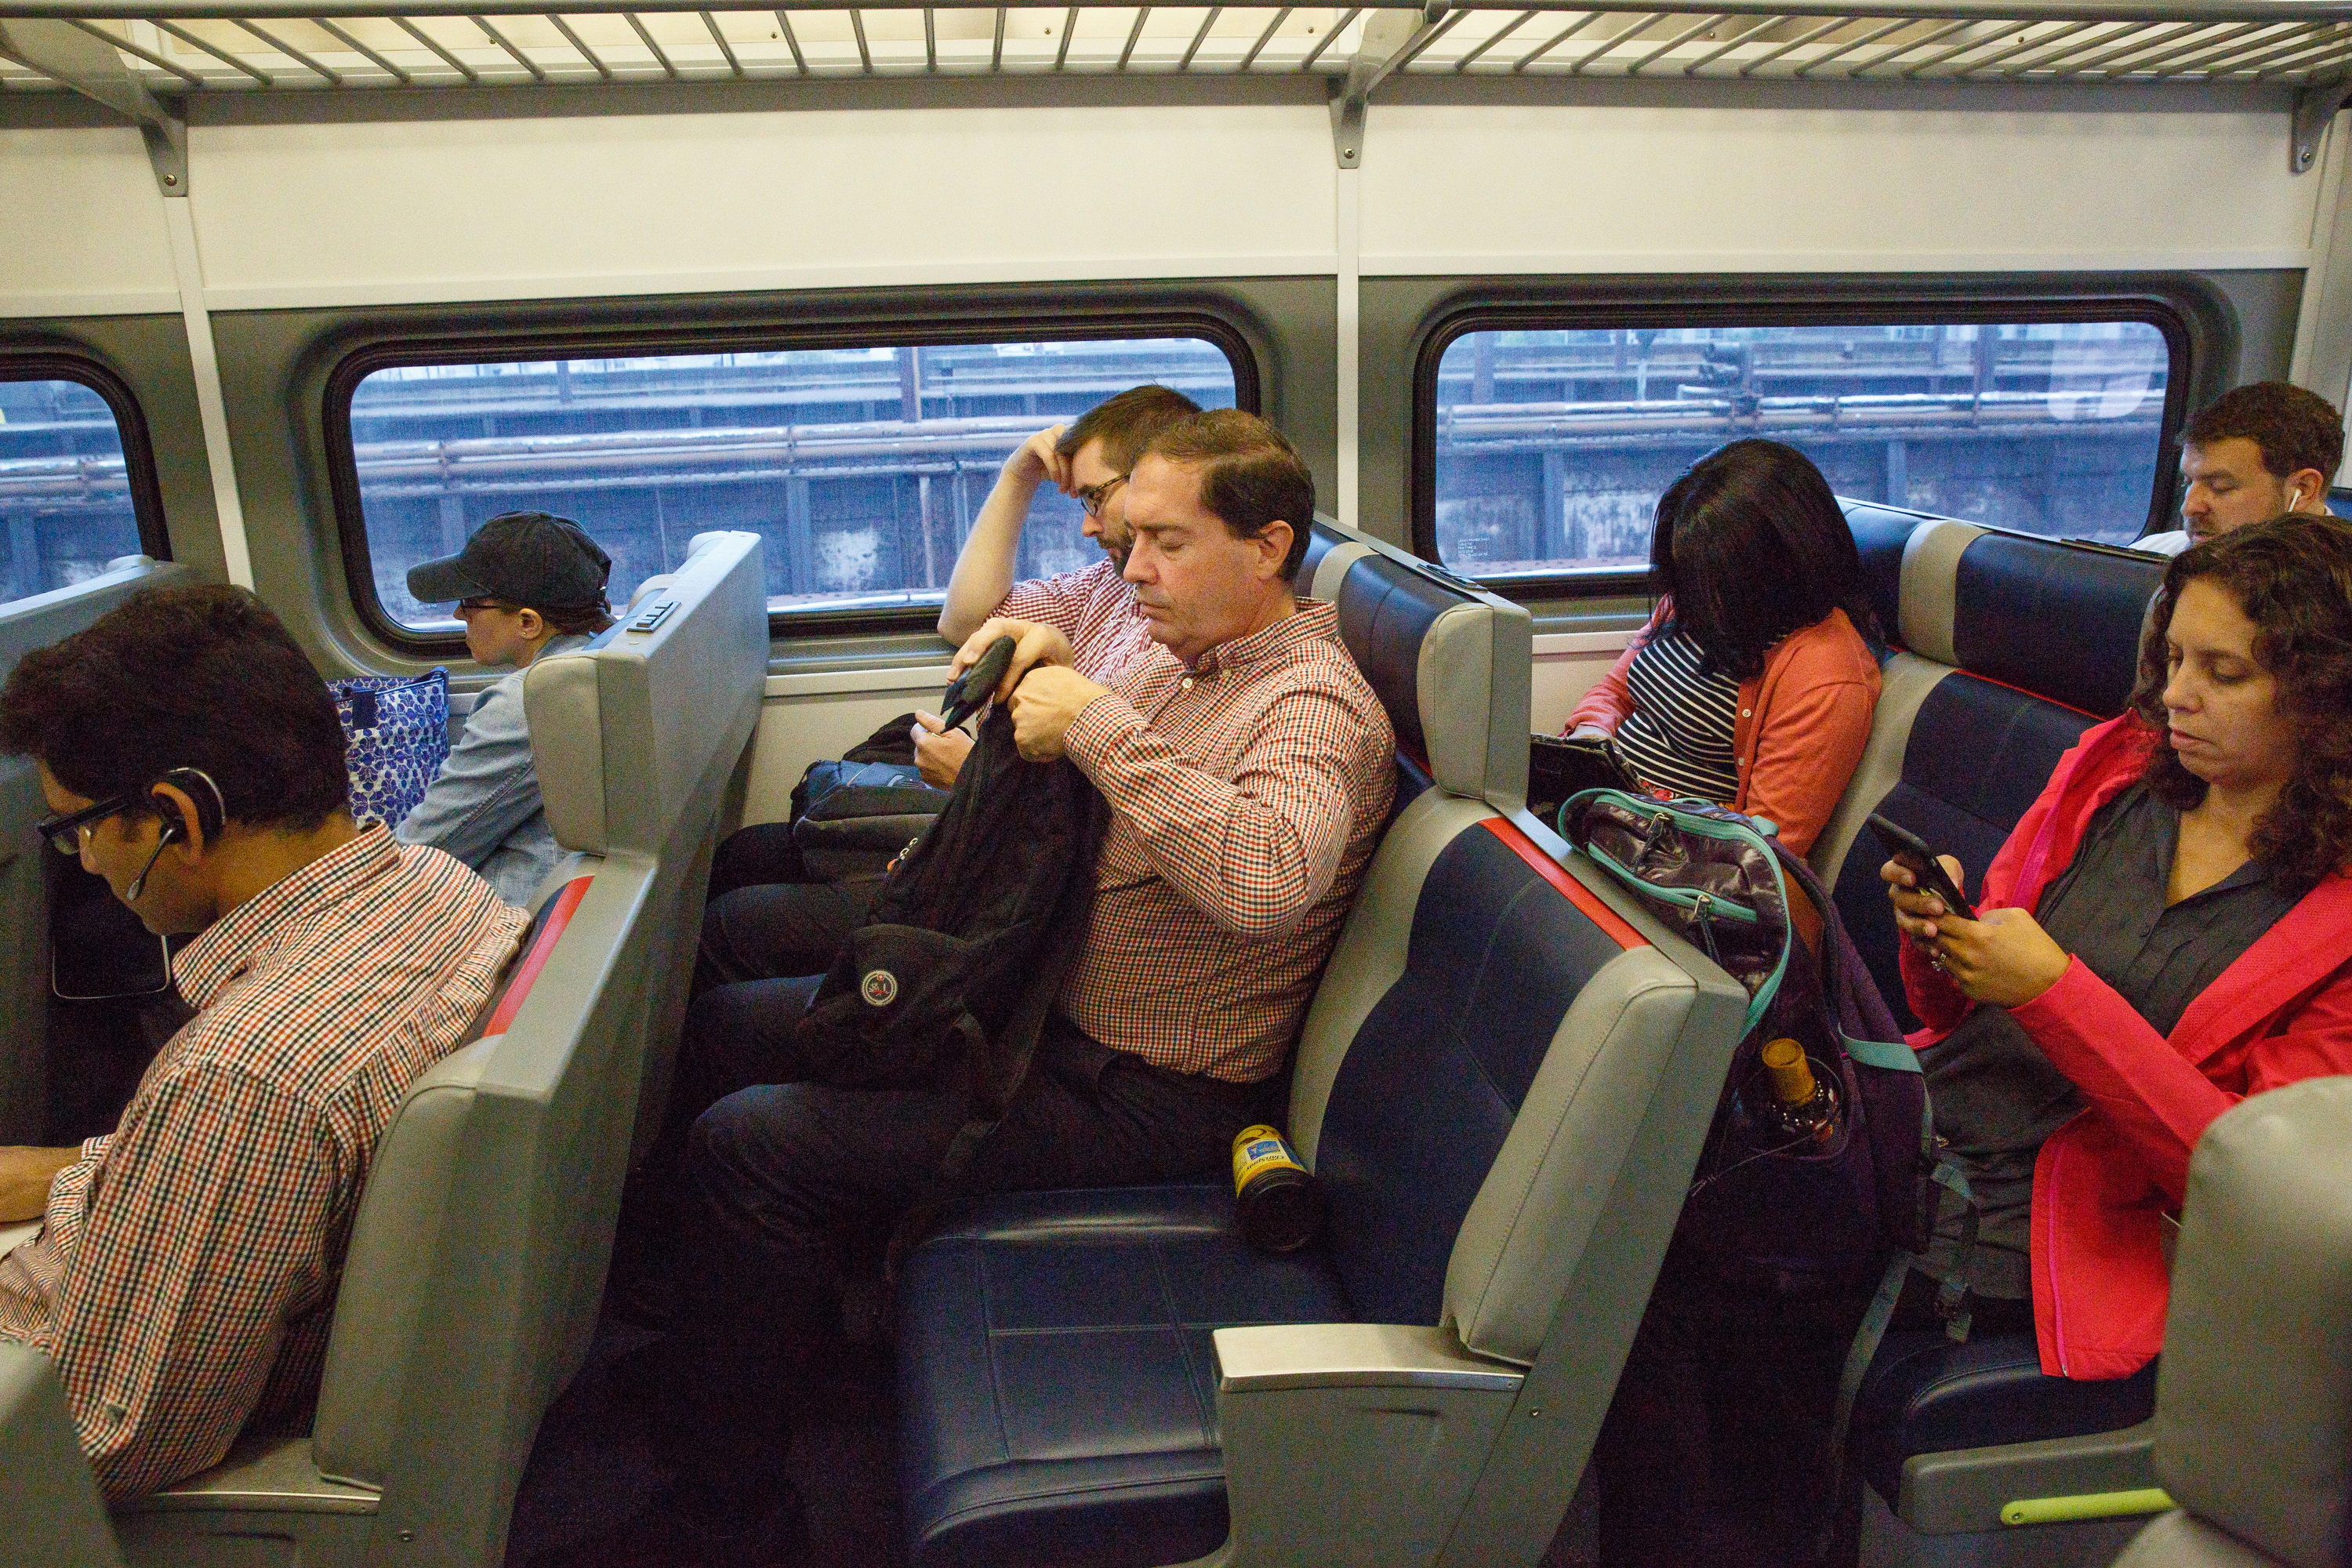 Matthew White, center, prepares to exit the train during his morning commute from Malvern to Suburban Station on Oct. 11. JESSICA GRIFFIN / Staff Photographer